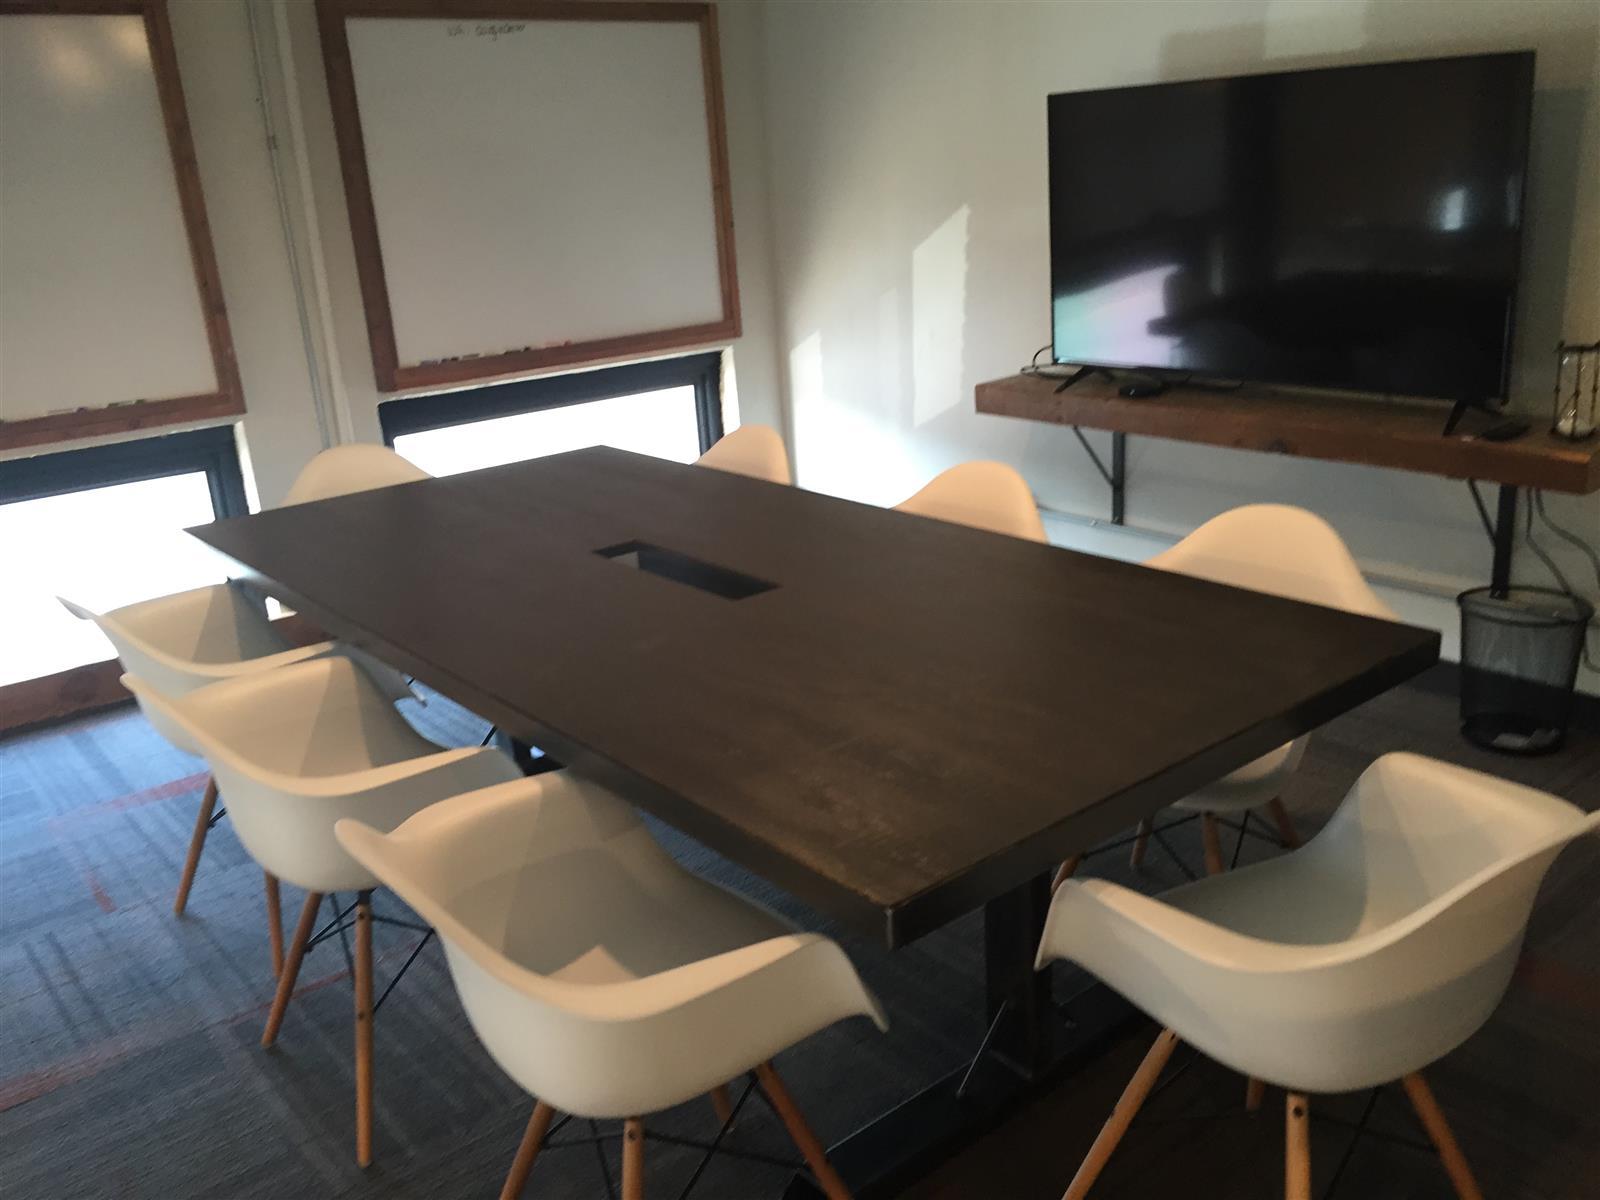 Meeting Rooms For Creative Brainstorming In Dallas